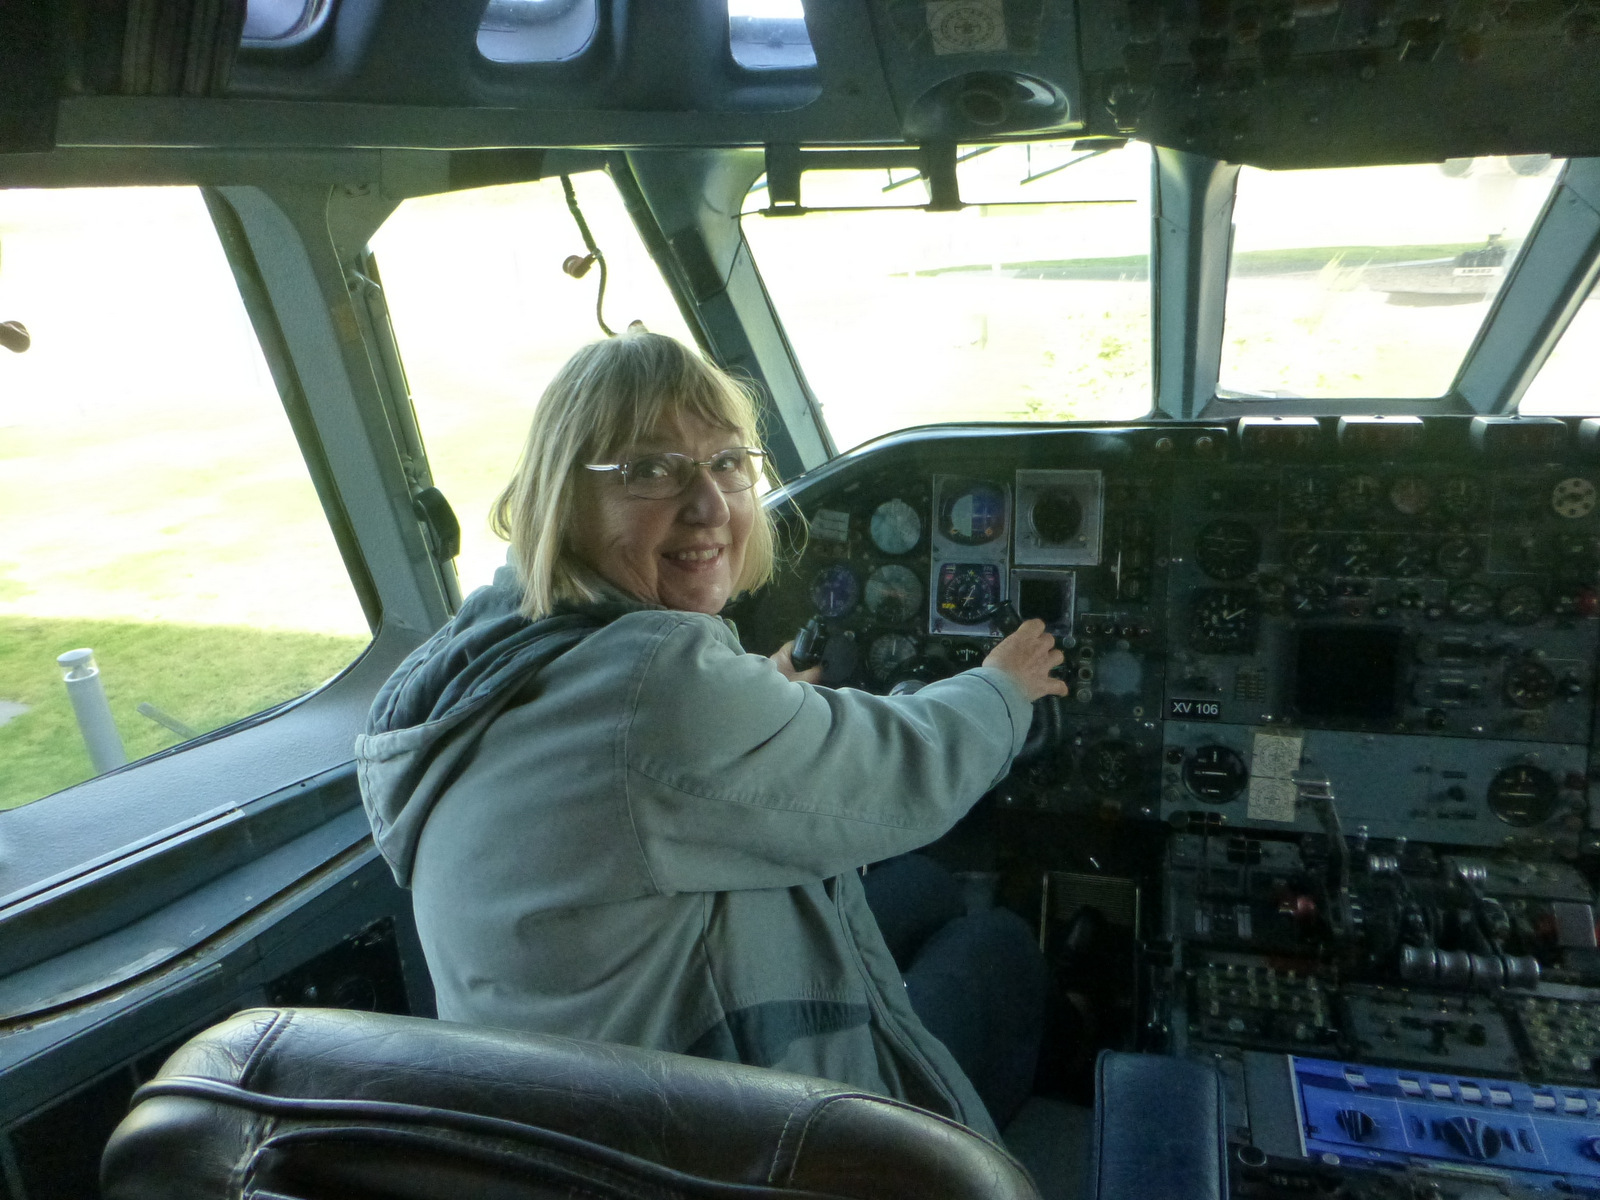 In the VC10 hot seat at AVRO museum